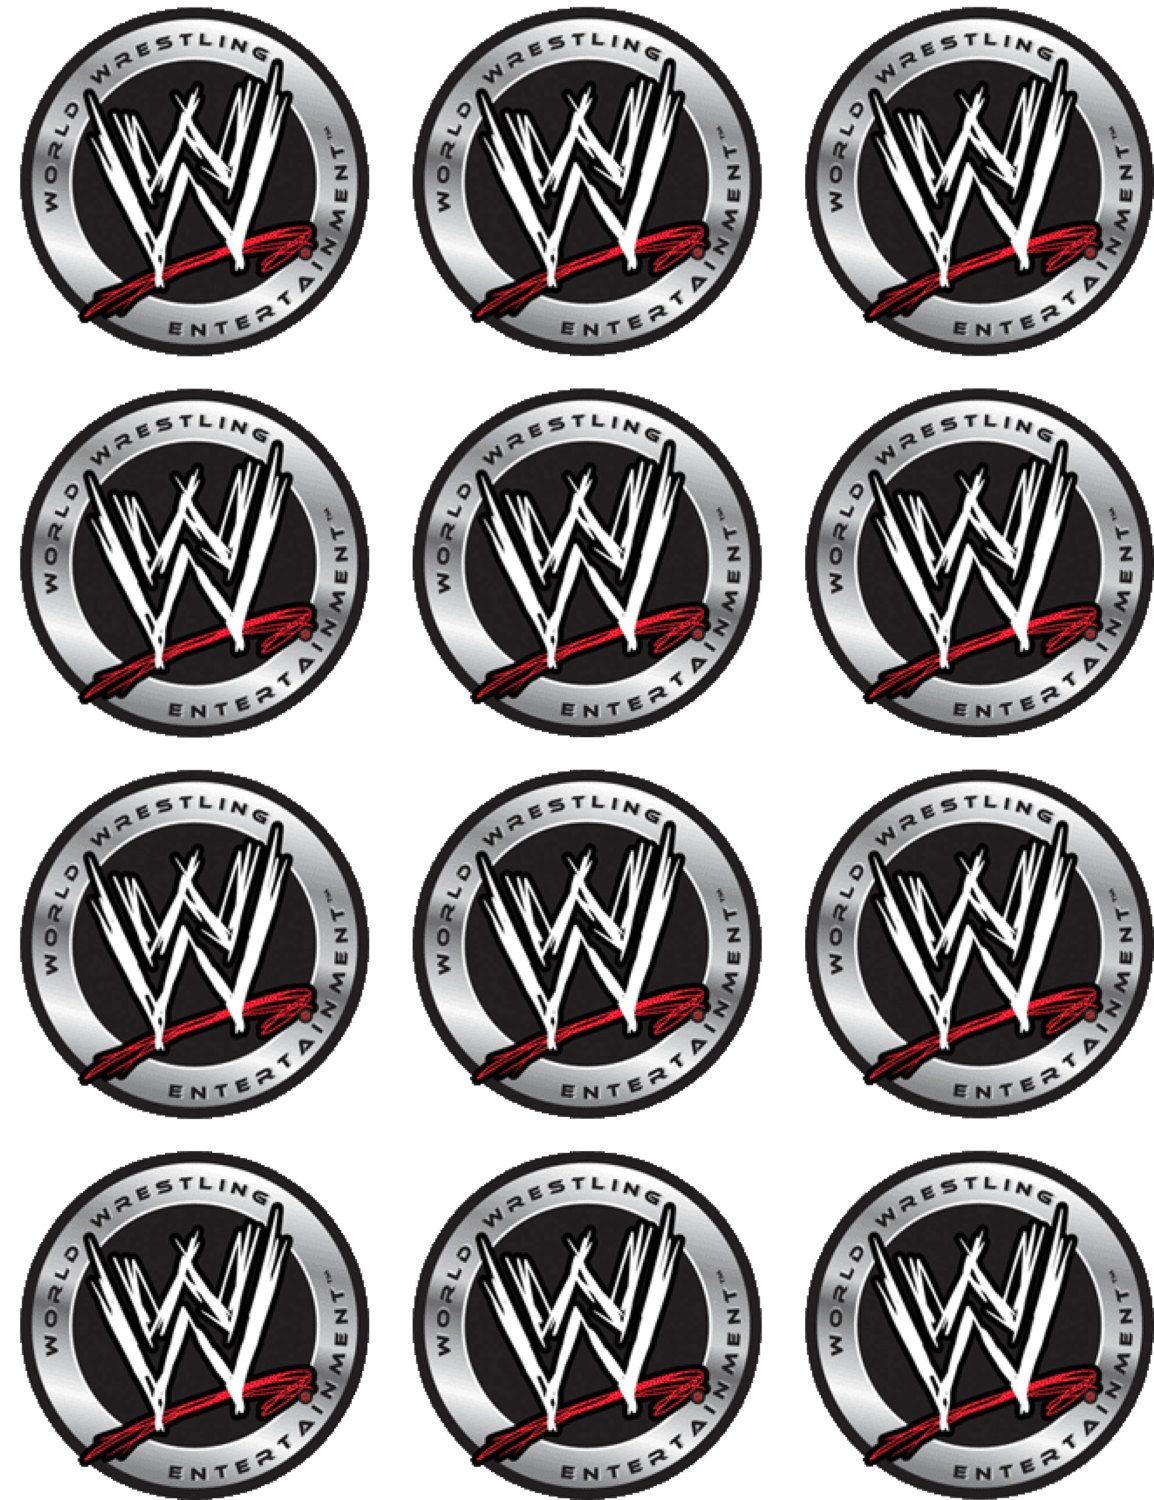 Wwe Edible Image Cupcake Toppers By Shorecakesupply On